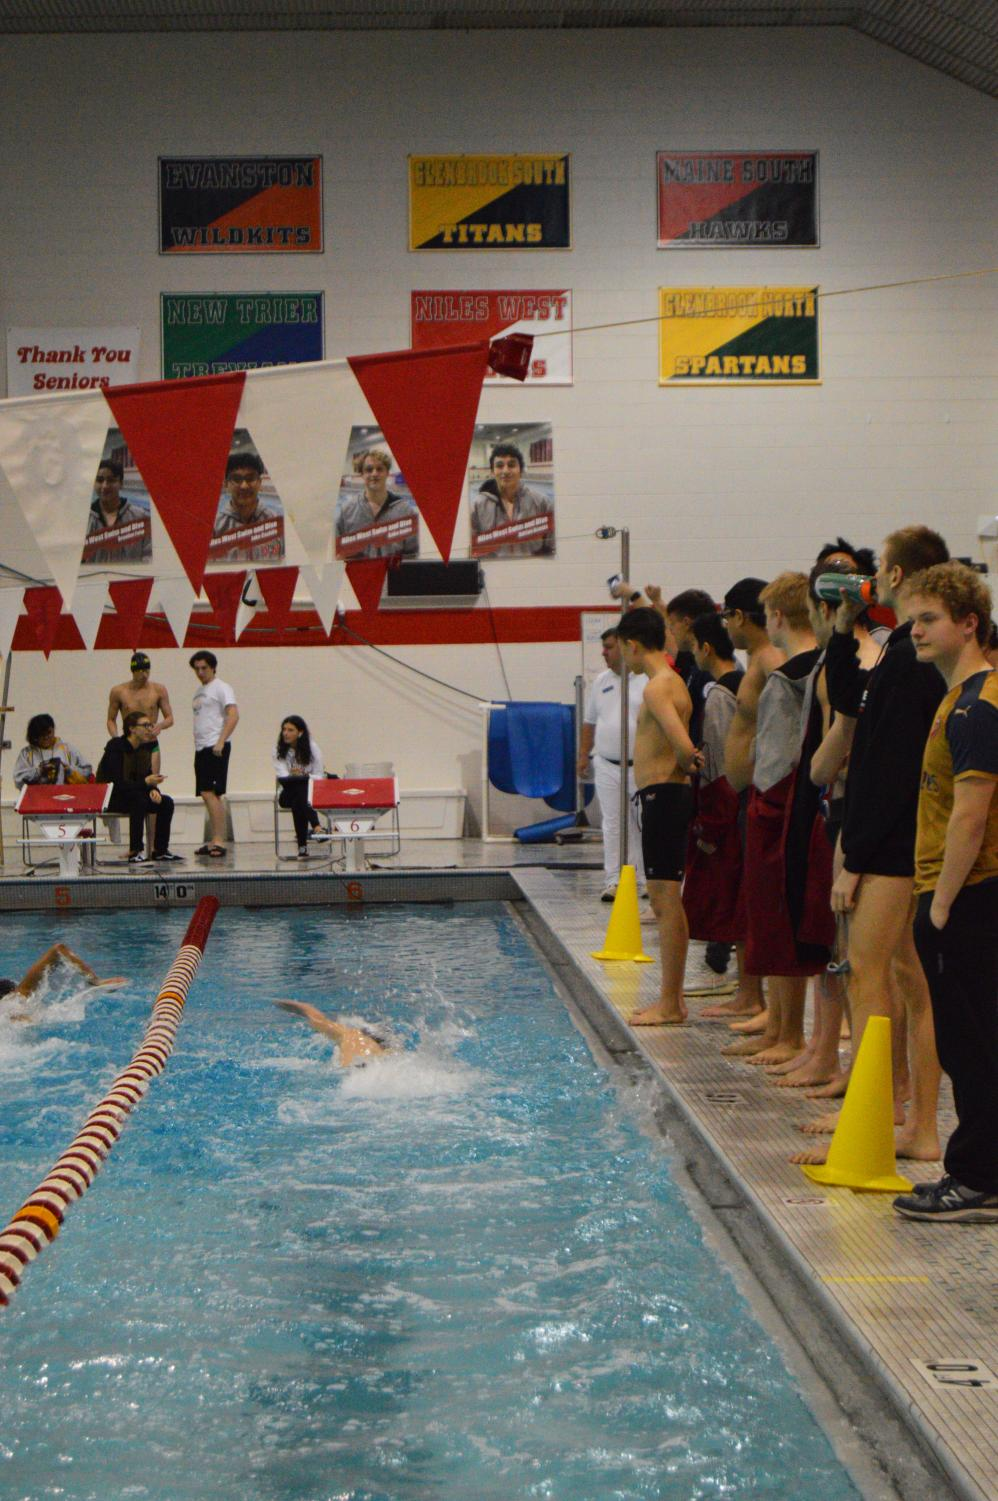 Swimmers+completing+the+100+yard+freestyle+event.+